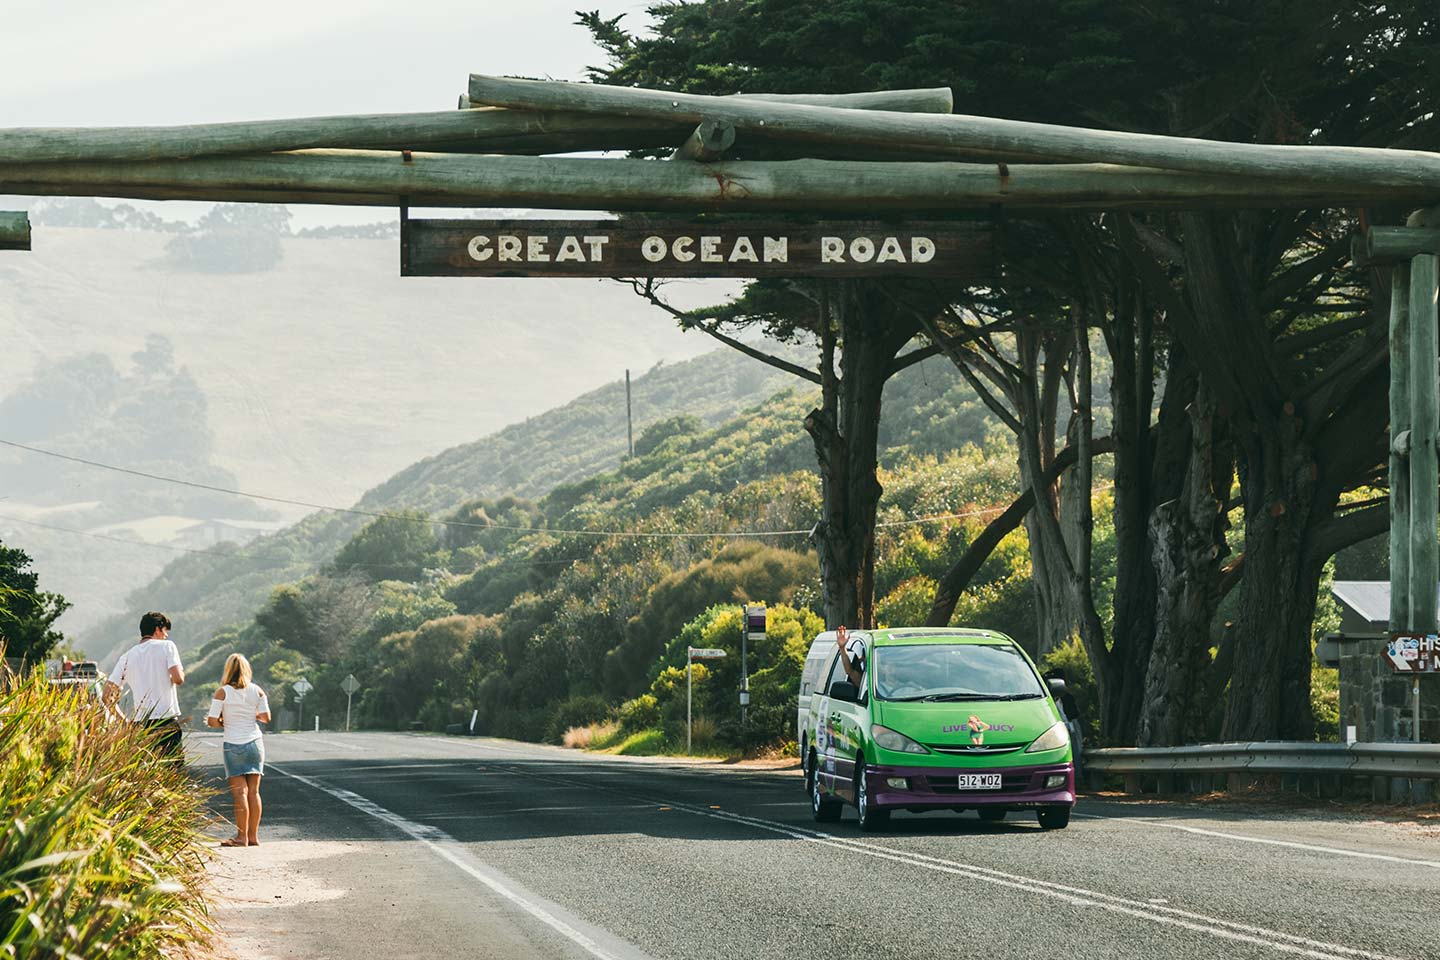 great ocean road crib driving under sign